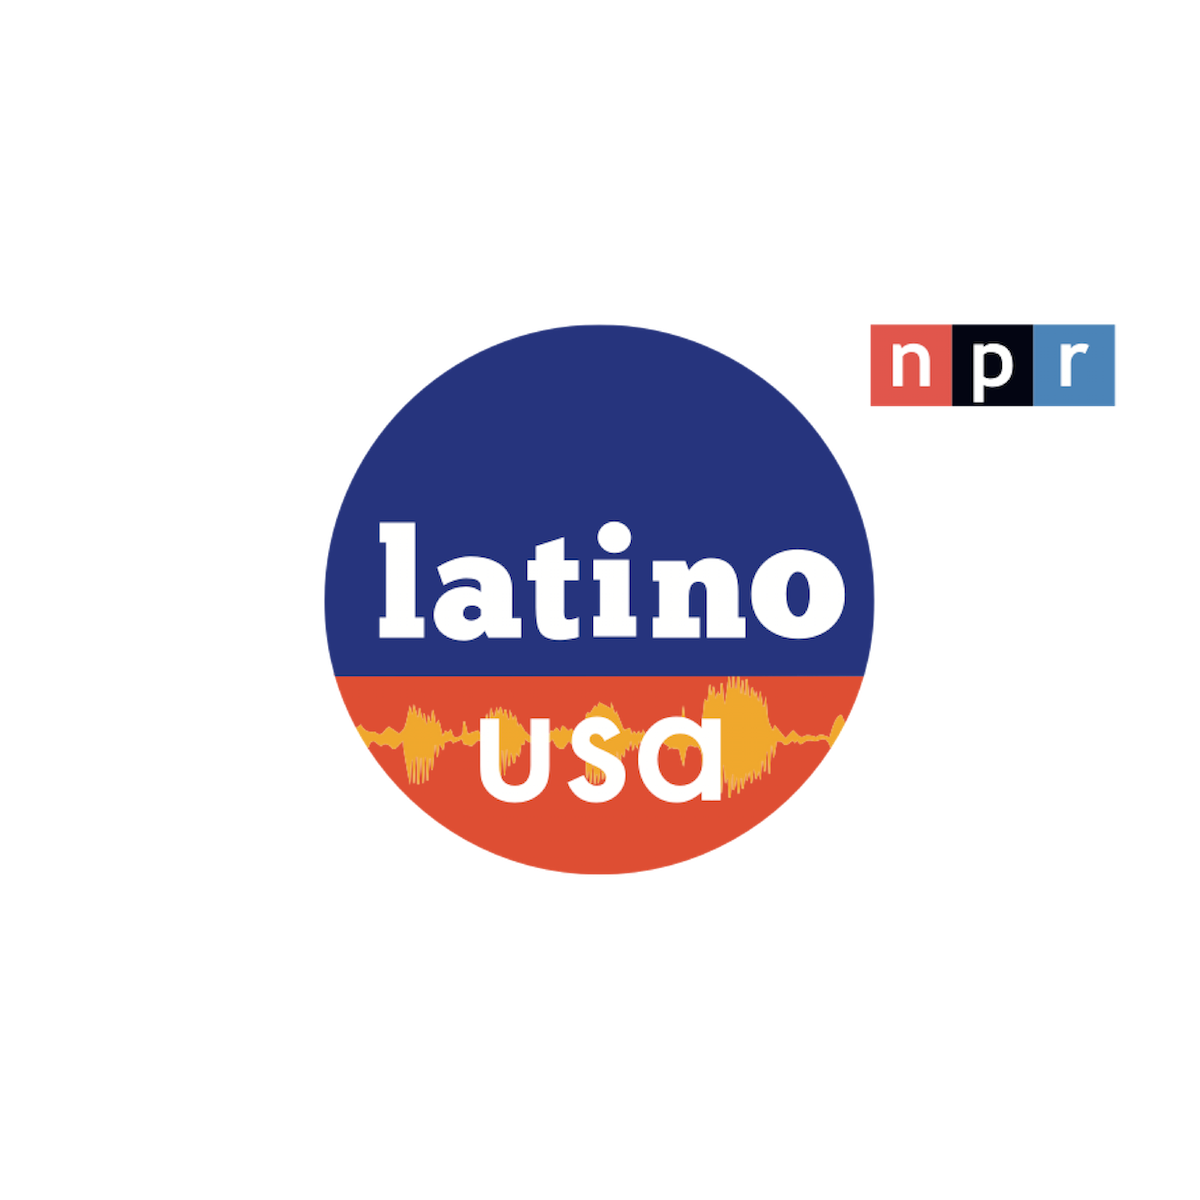 Sandra Cisneros Doesn't Need Your Approval for NPR's Latino USA -